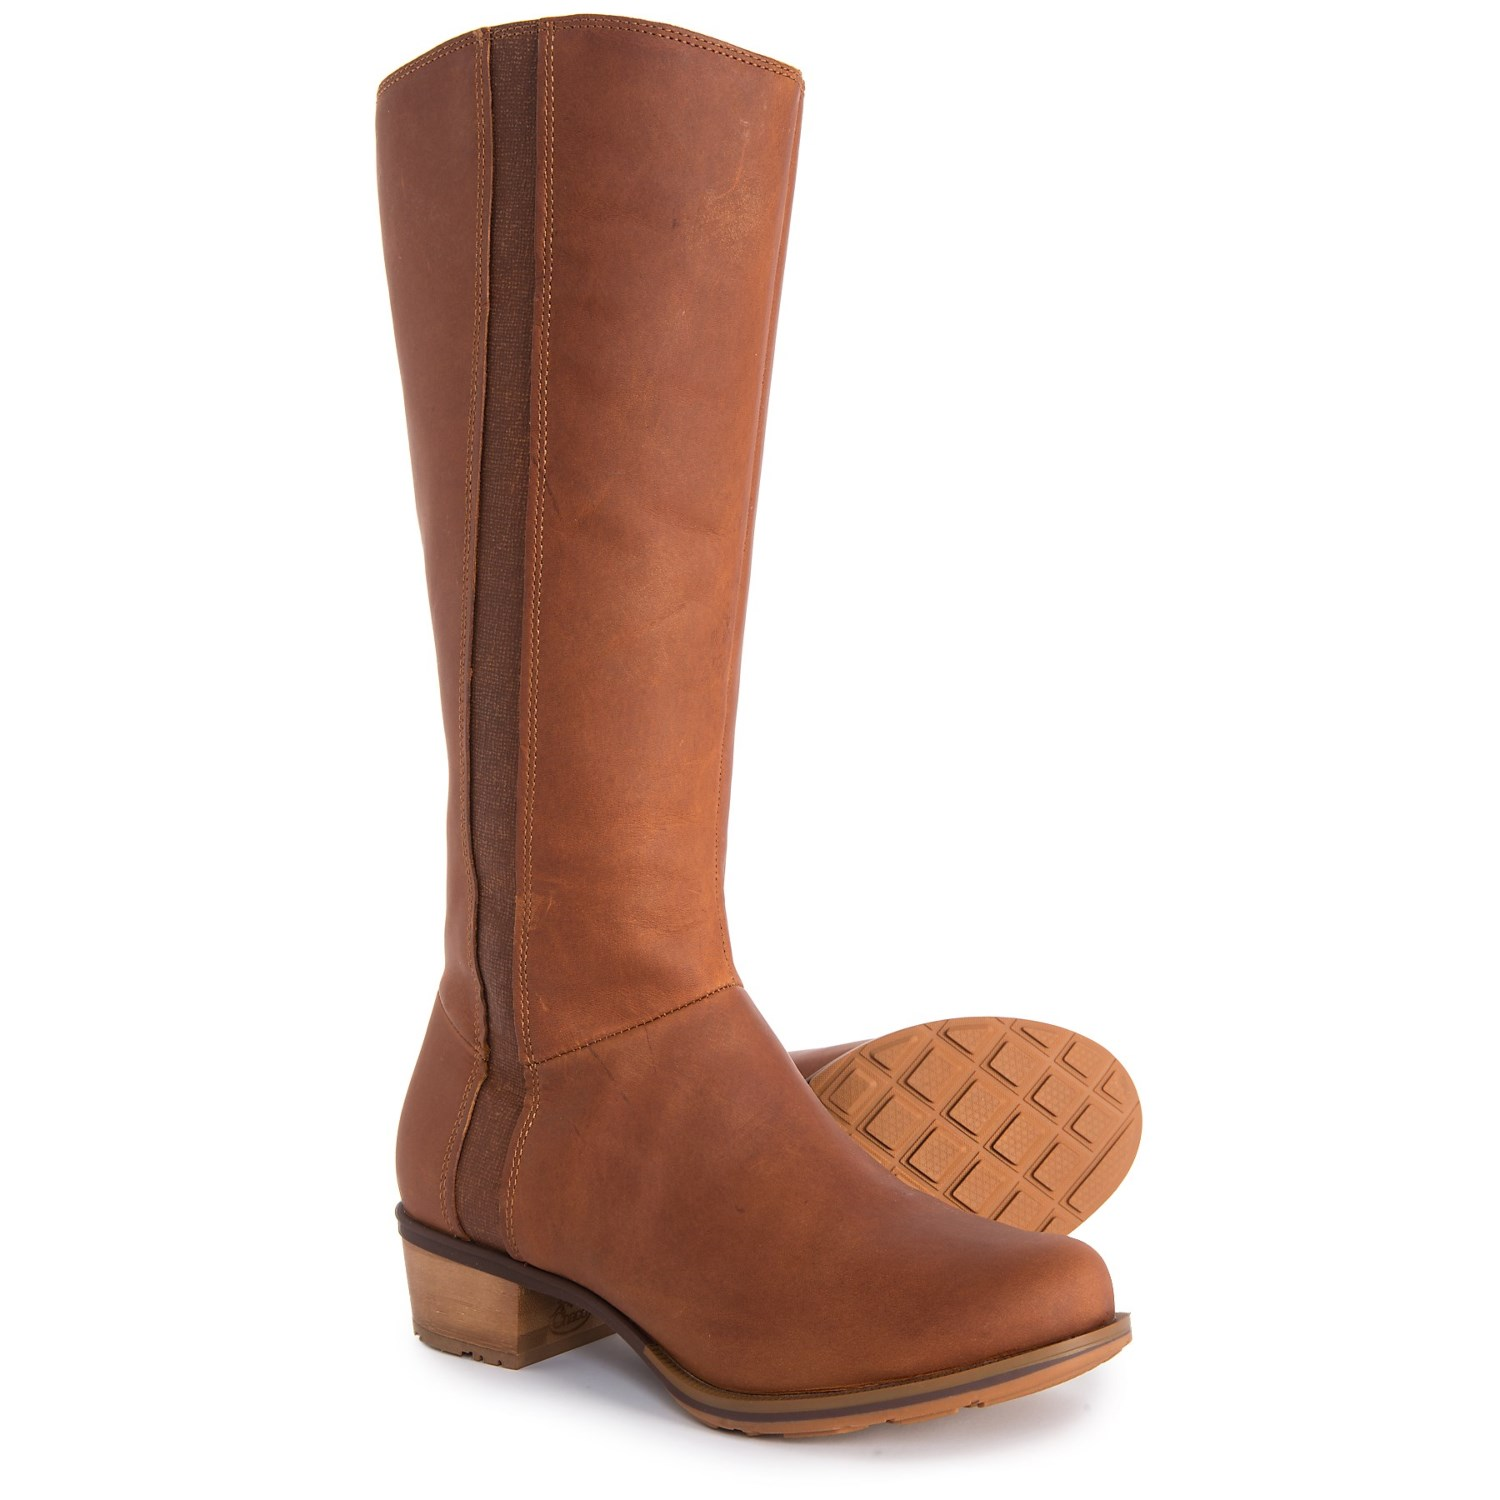 Chaco Cataluna High Boots (For Women